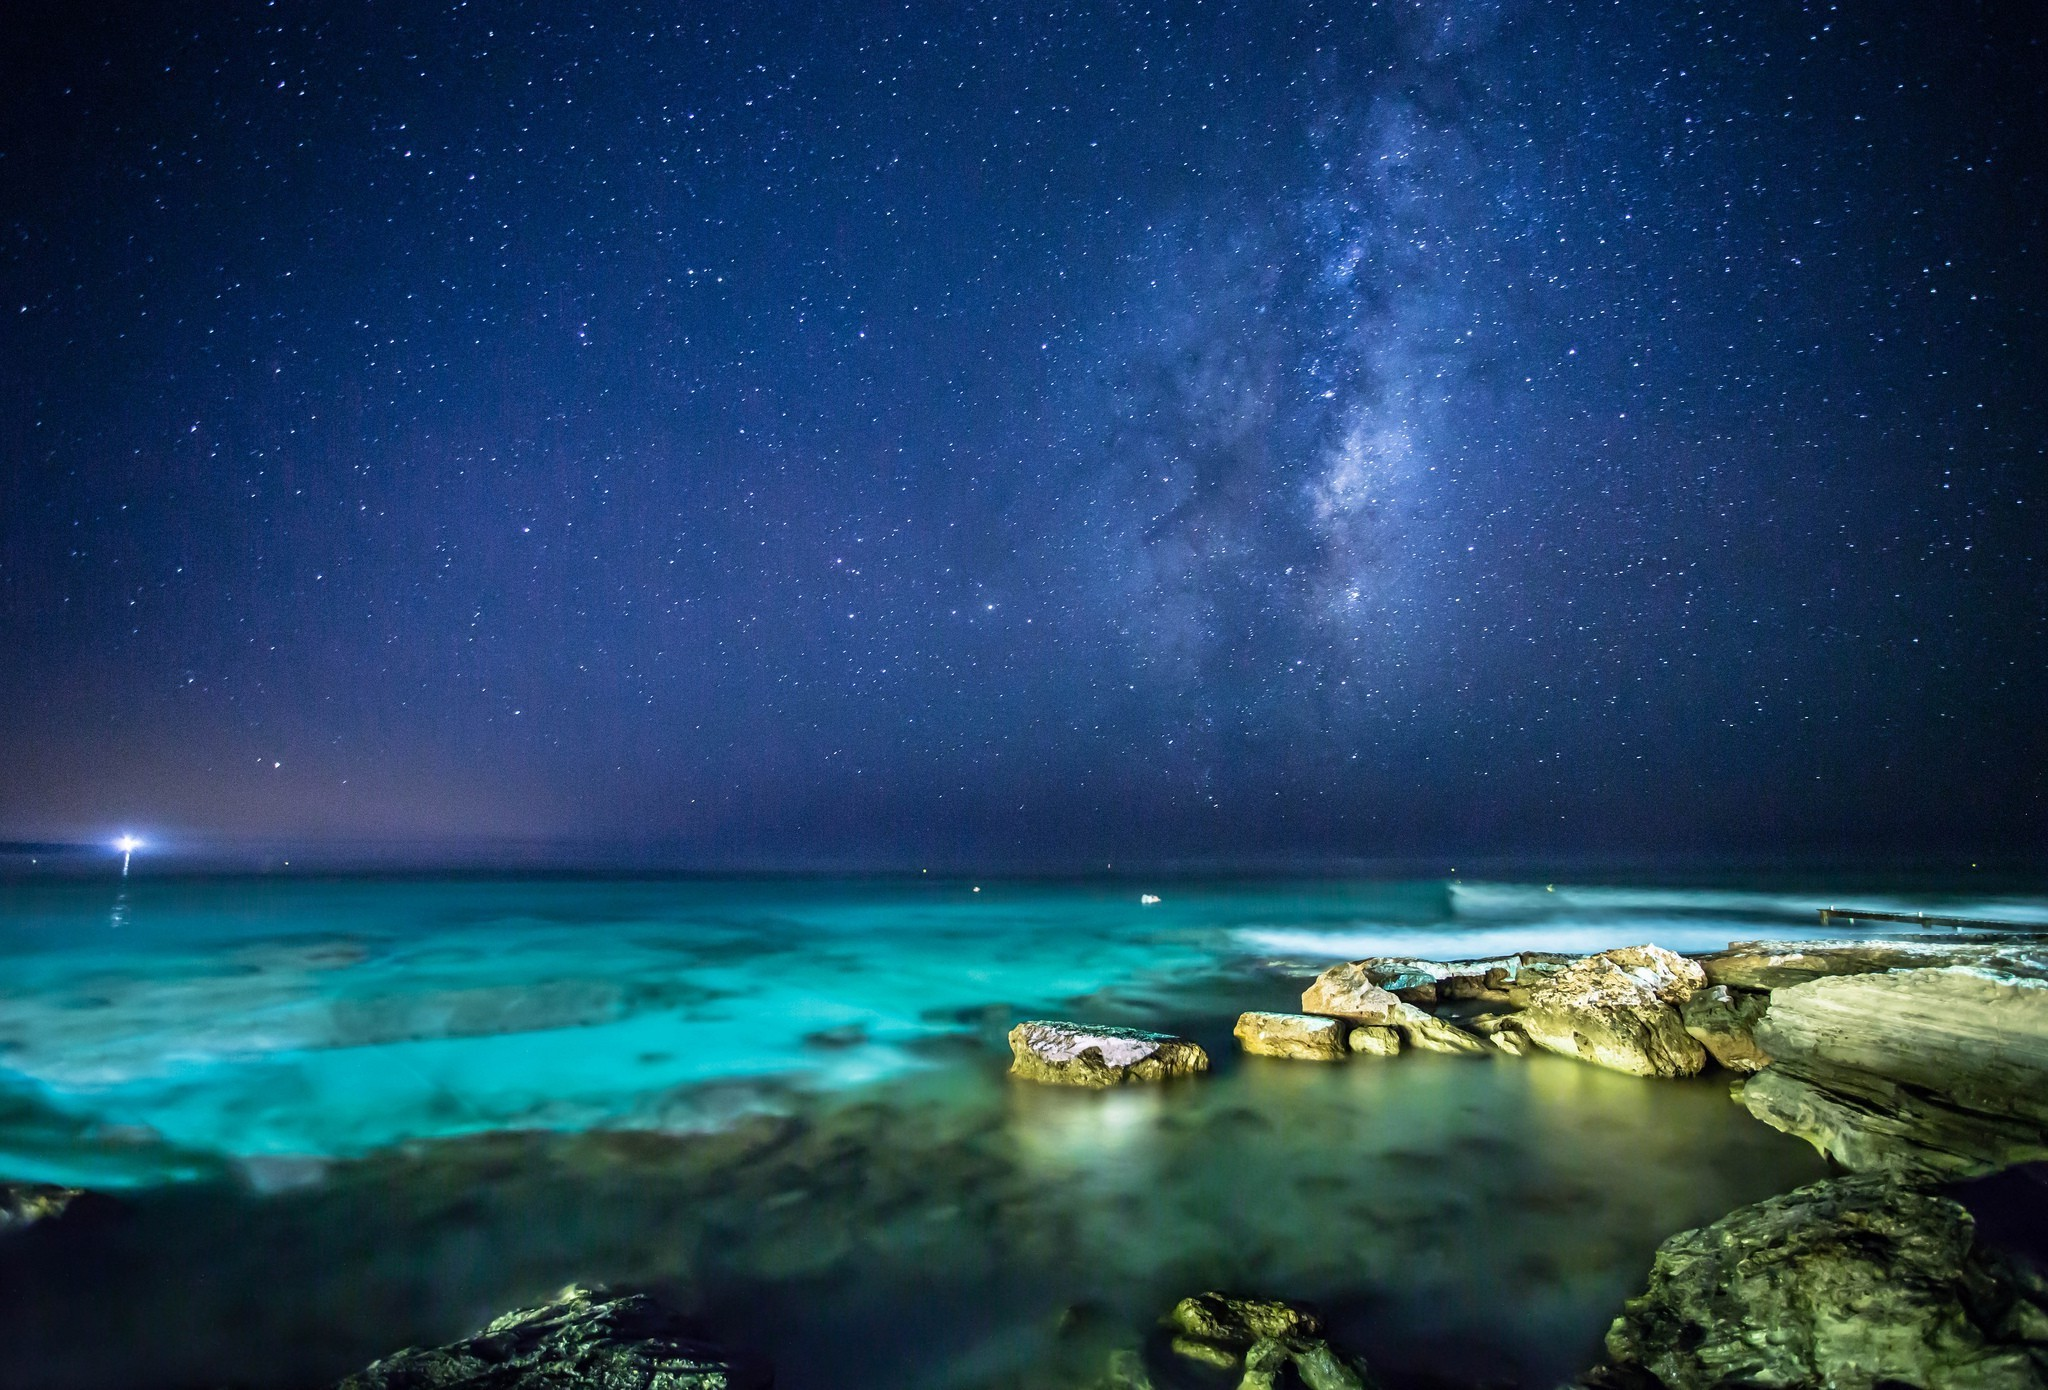 2048x1390 landscape, Sea, Night, Stars Wallpapers HD / Desktop and Mobile Backgrounds